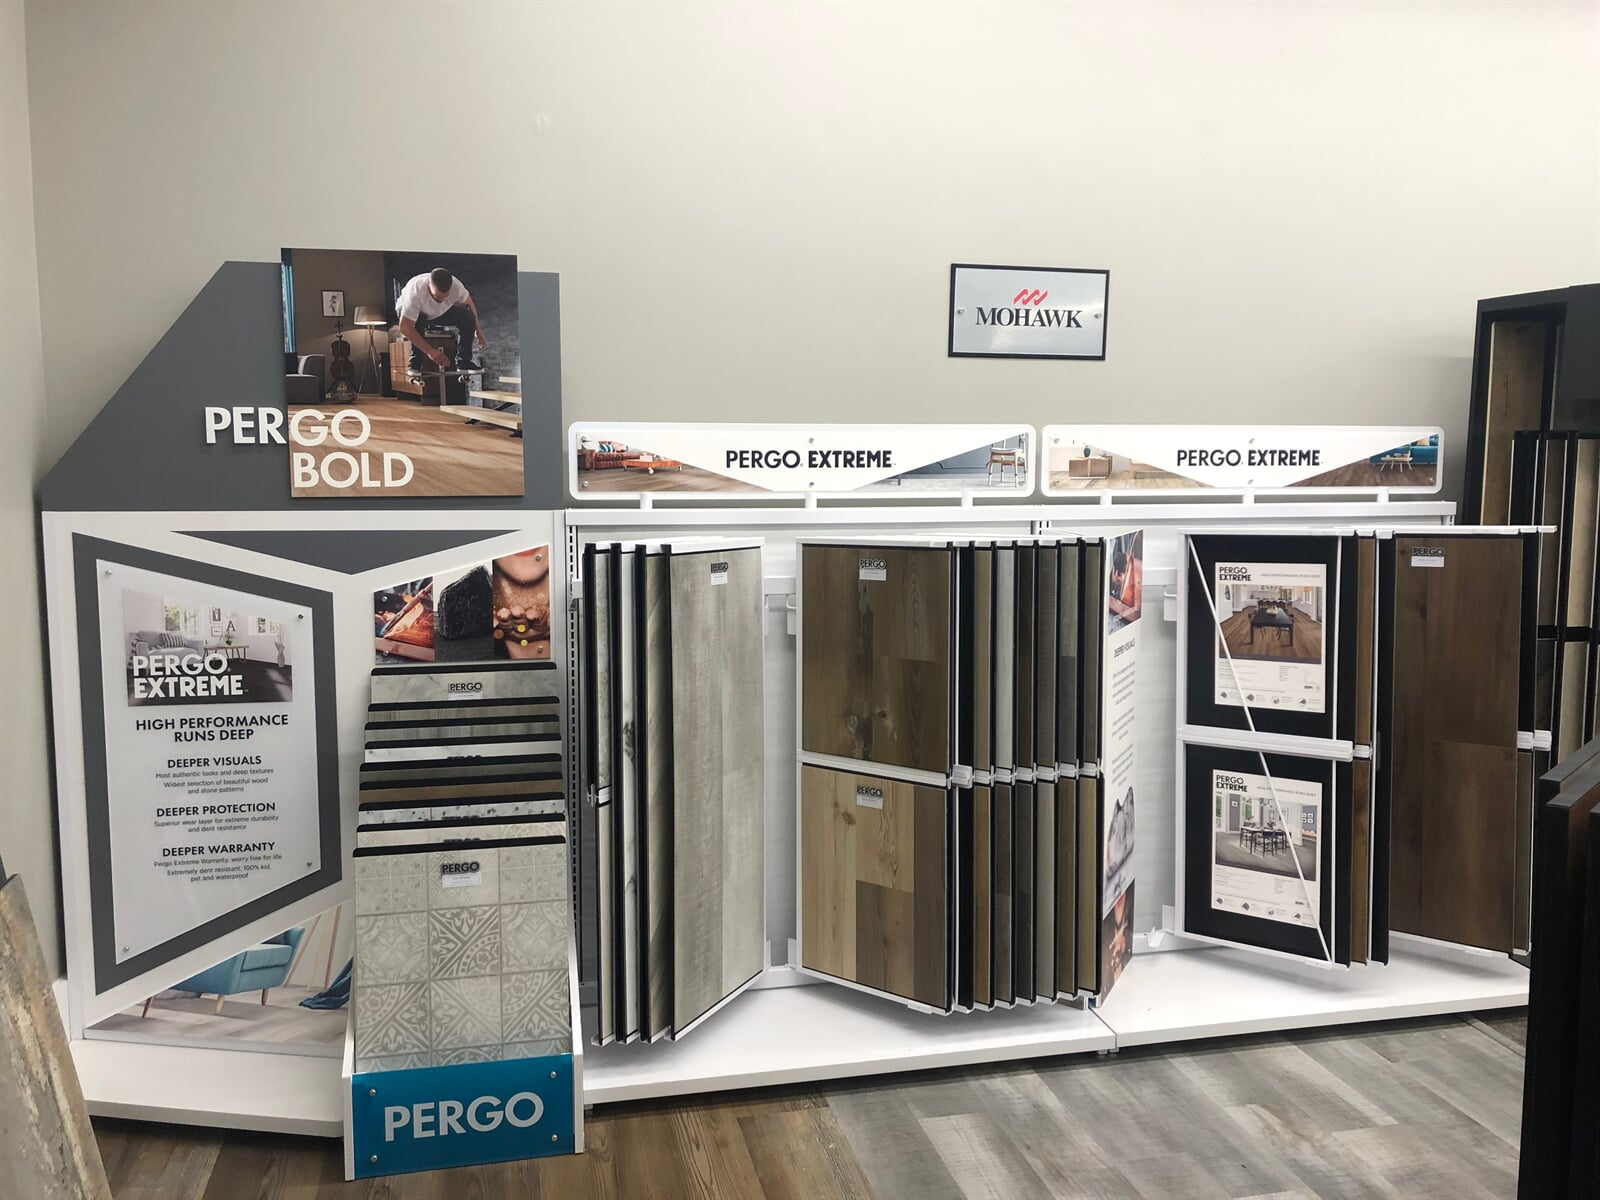 Pergo Flooring in Roanoke, VA from The Floor Source